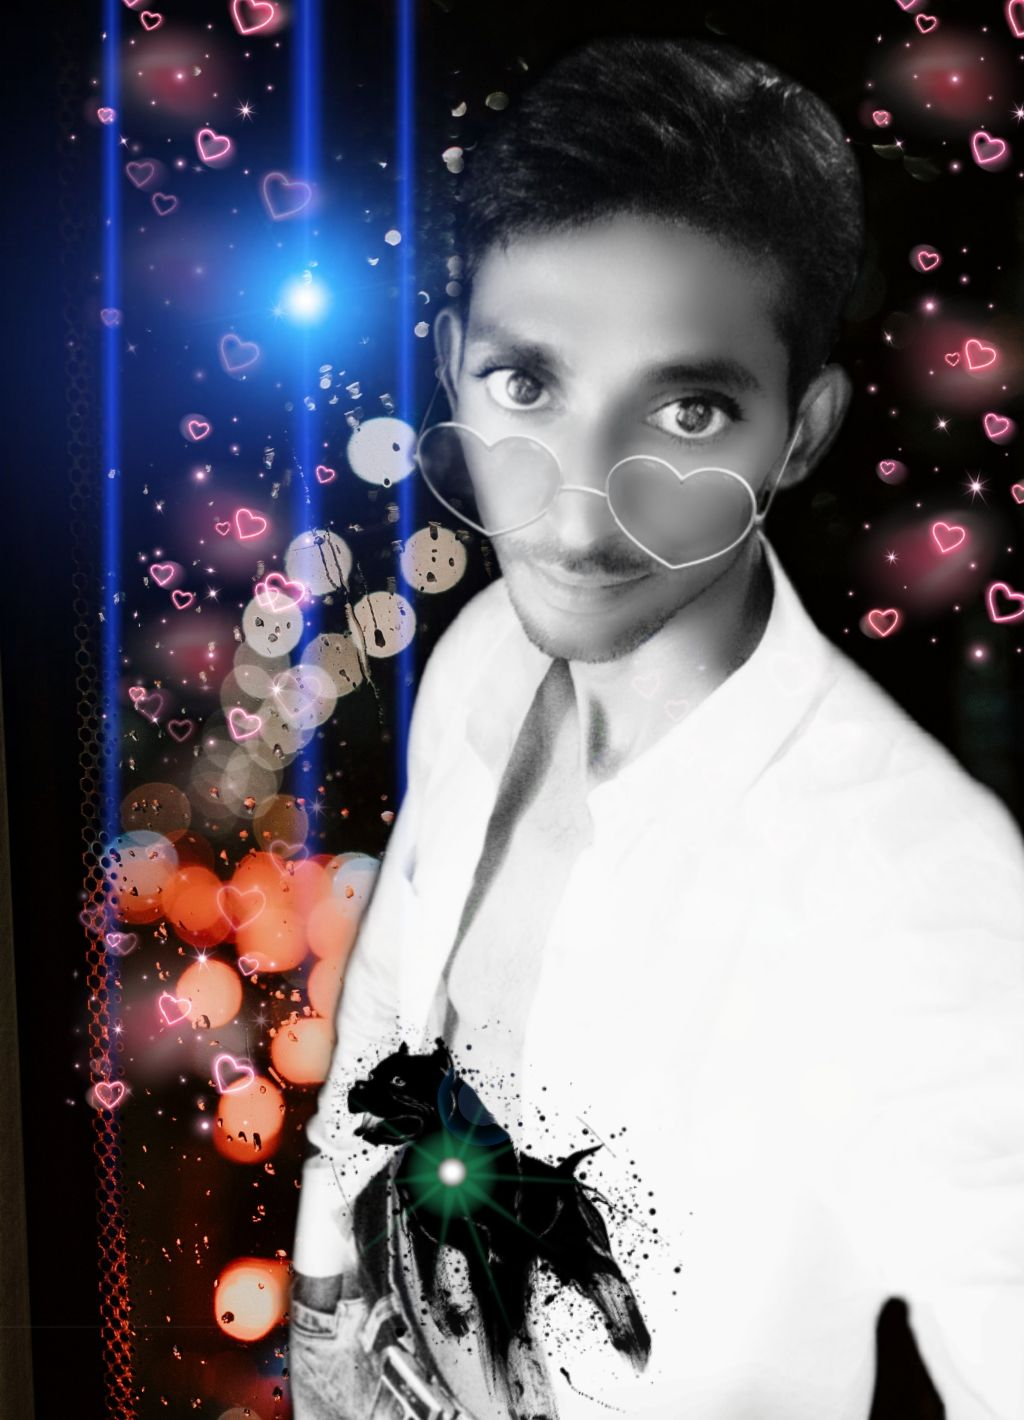 #freetoedit #editing #holographic #fotoshooting #desiboy